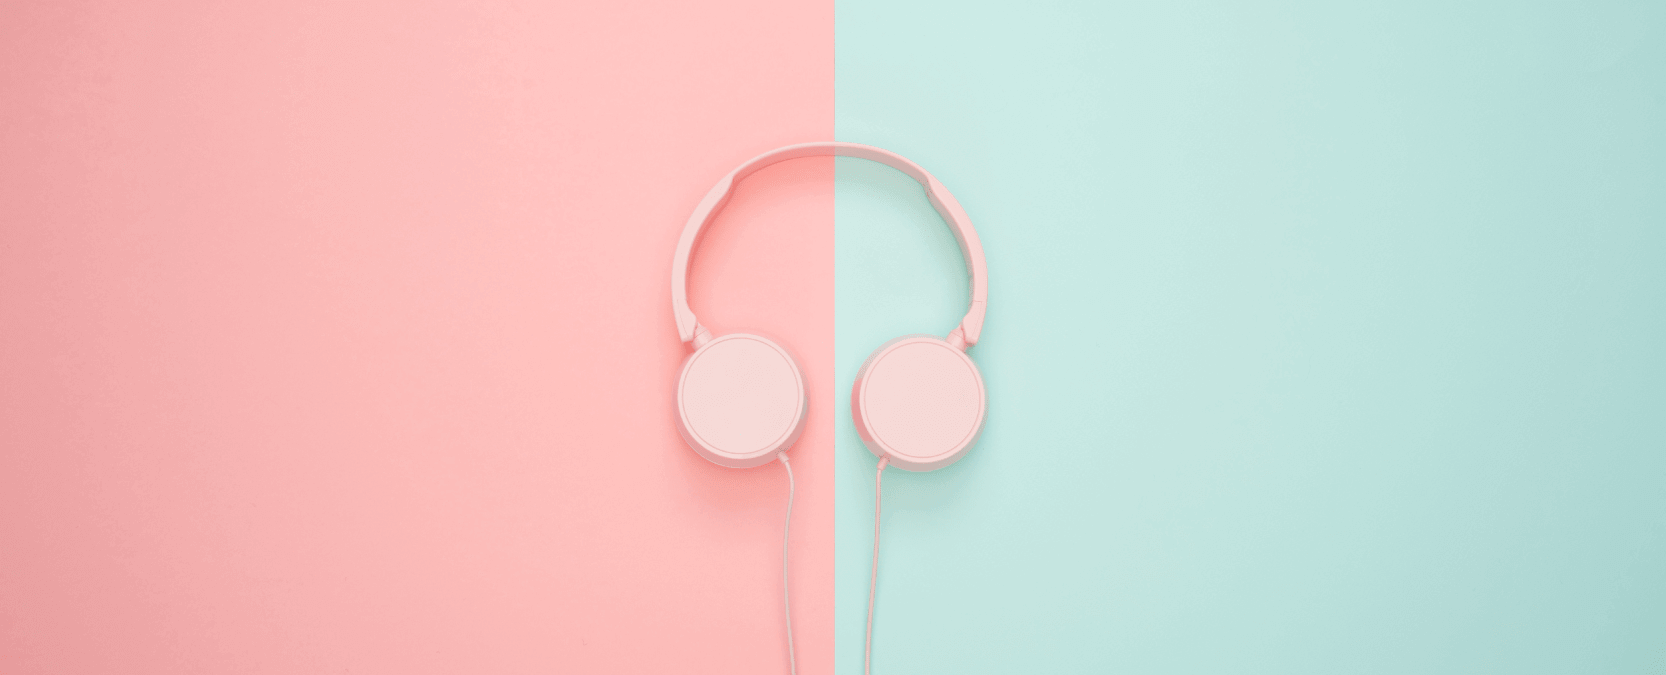 34 Marketing & Social Media Podcasts Any Professional Should Listen To